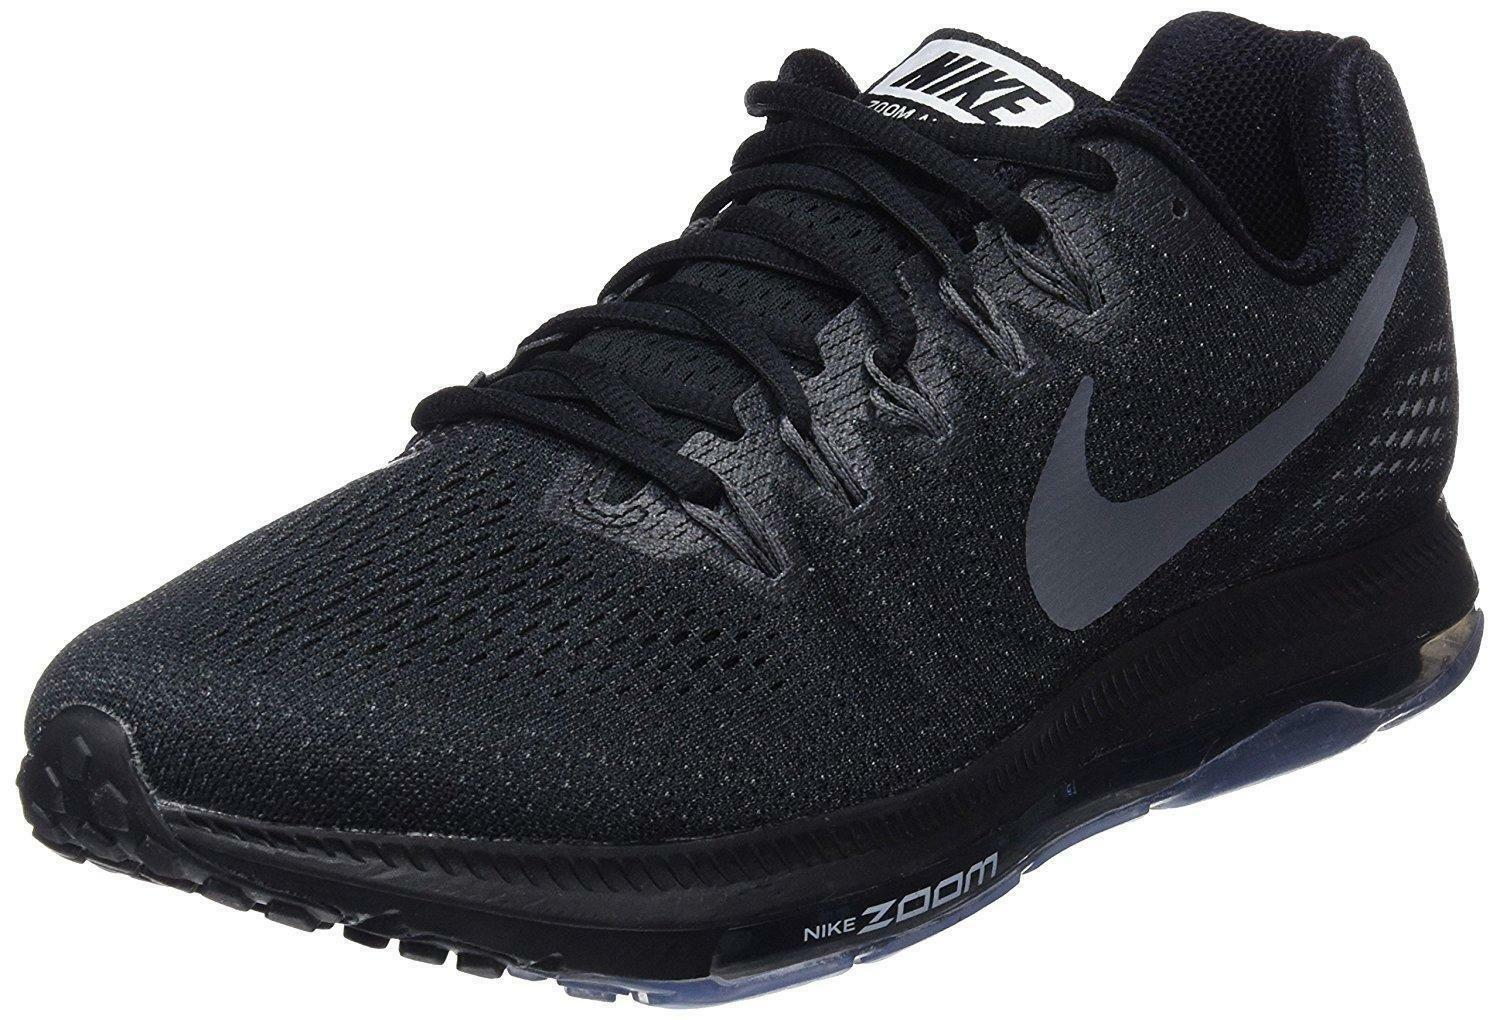 Nike Men's Zoom All Out Low Black Running Trainers 14 Shoes Sneakers 878670